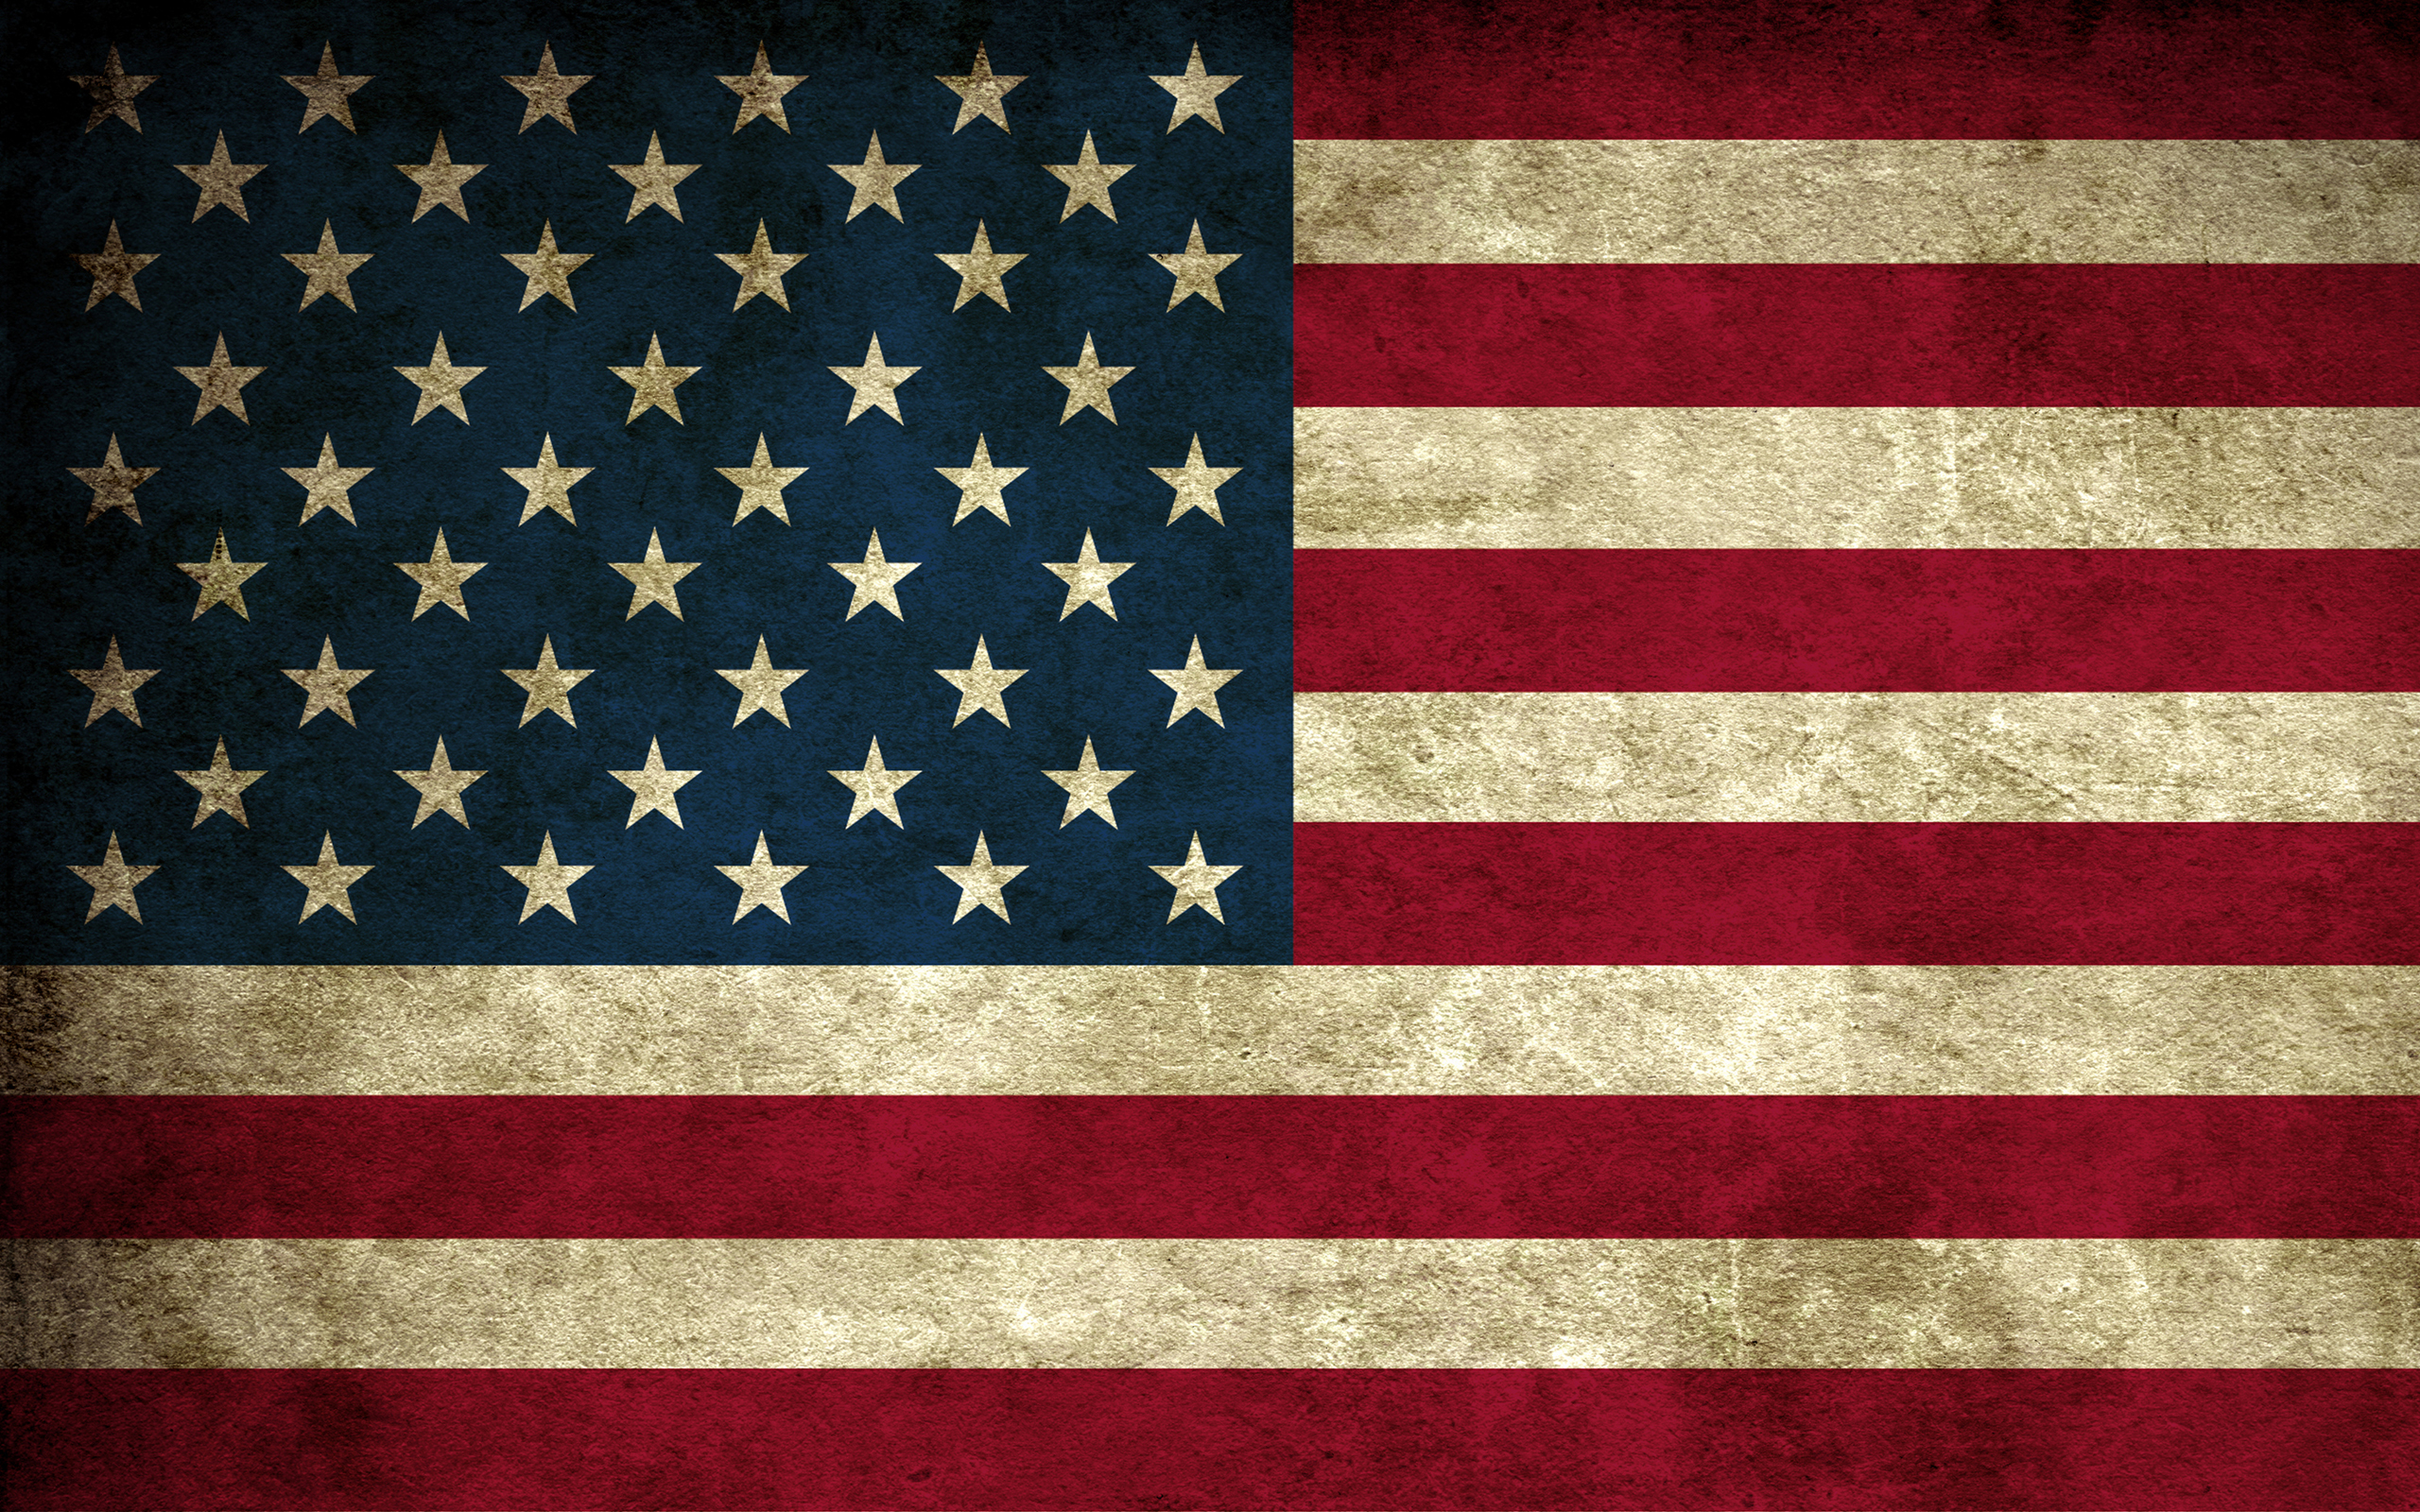 American Flag Full HD Wallpaper And Background Image